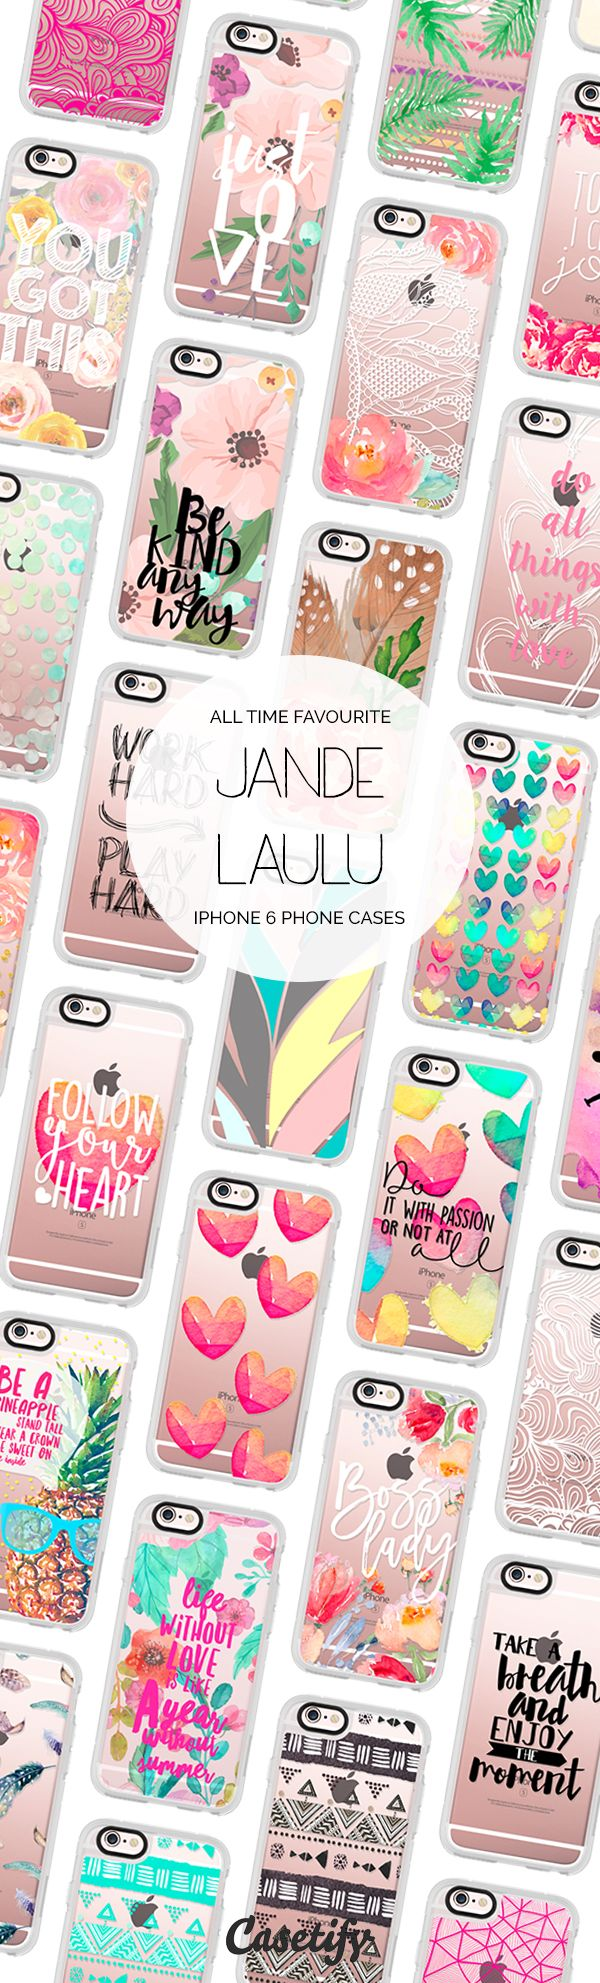 Most popular iPhone 6 protective phone case designs by Jande Laulu | Click through to see more iphone phone case ideas >>> https://www.casetify.com/jande9/collection #floral | @casetify